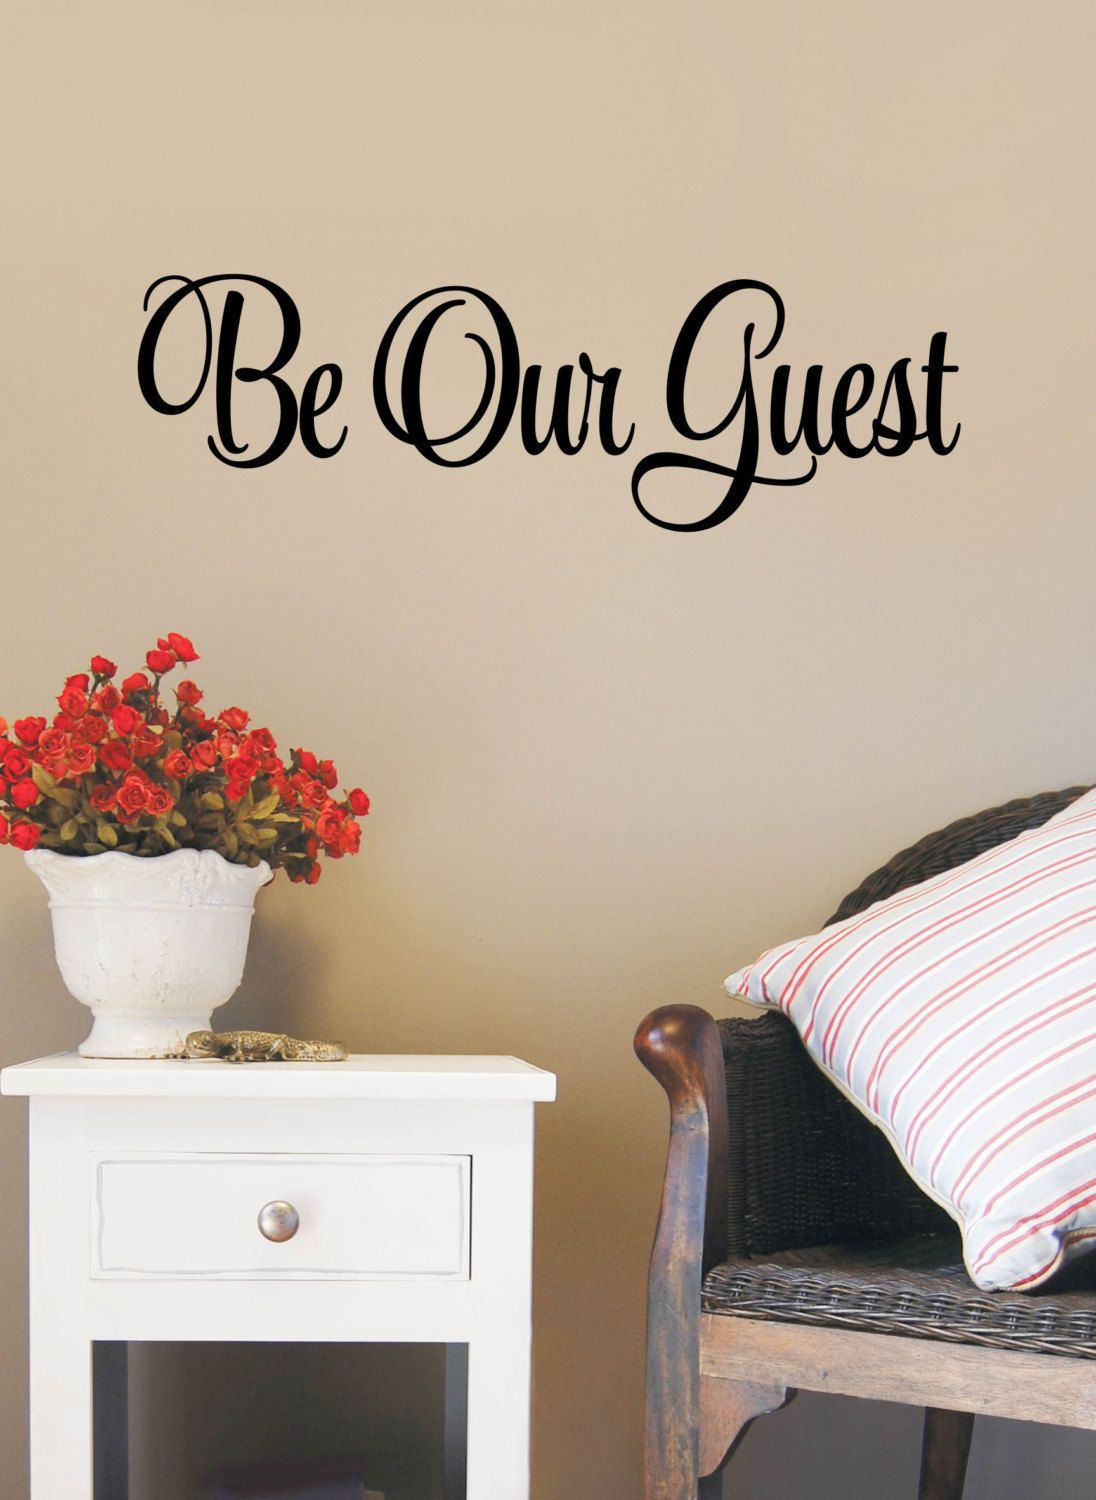 Be Our Guest Decal Decor Wall Art Family Quote Vinyl Decals